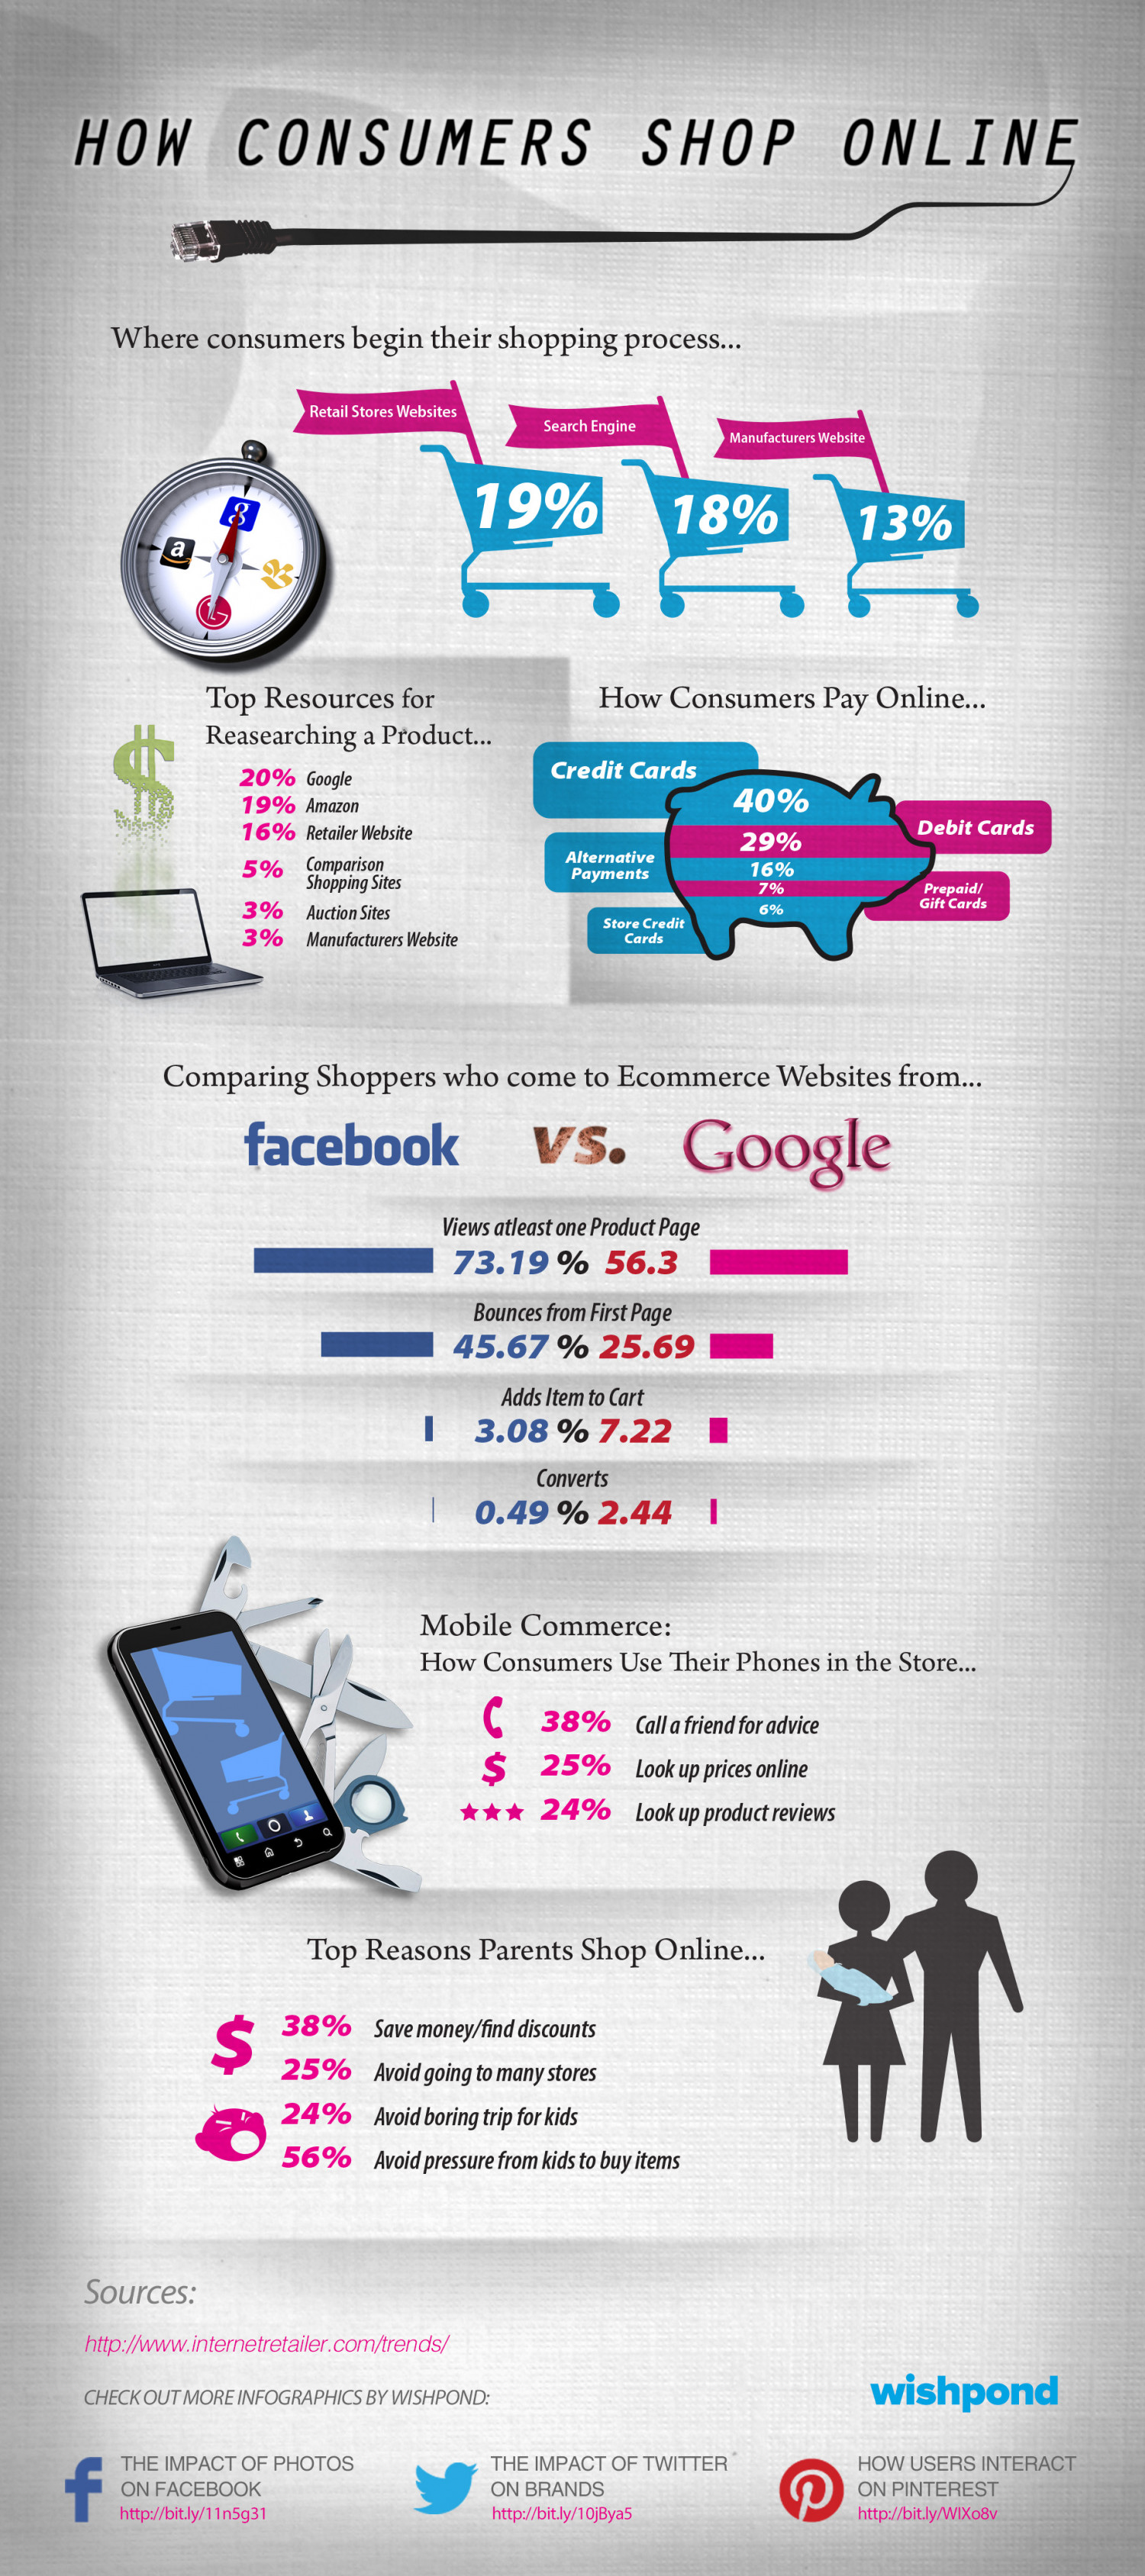 How Consumers Shop Onlince Infographic